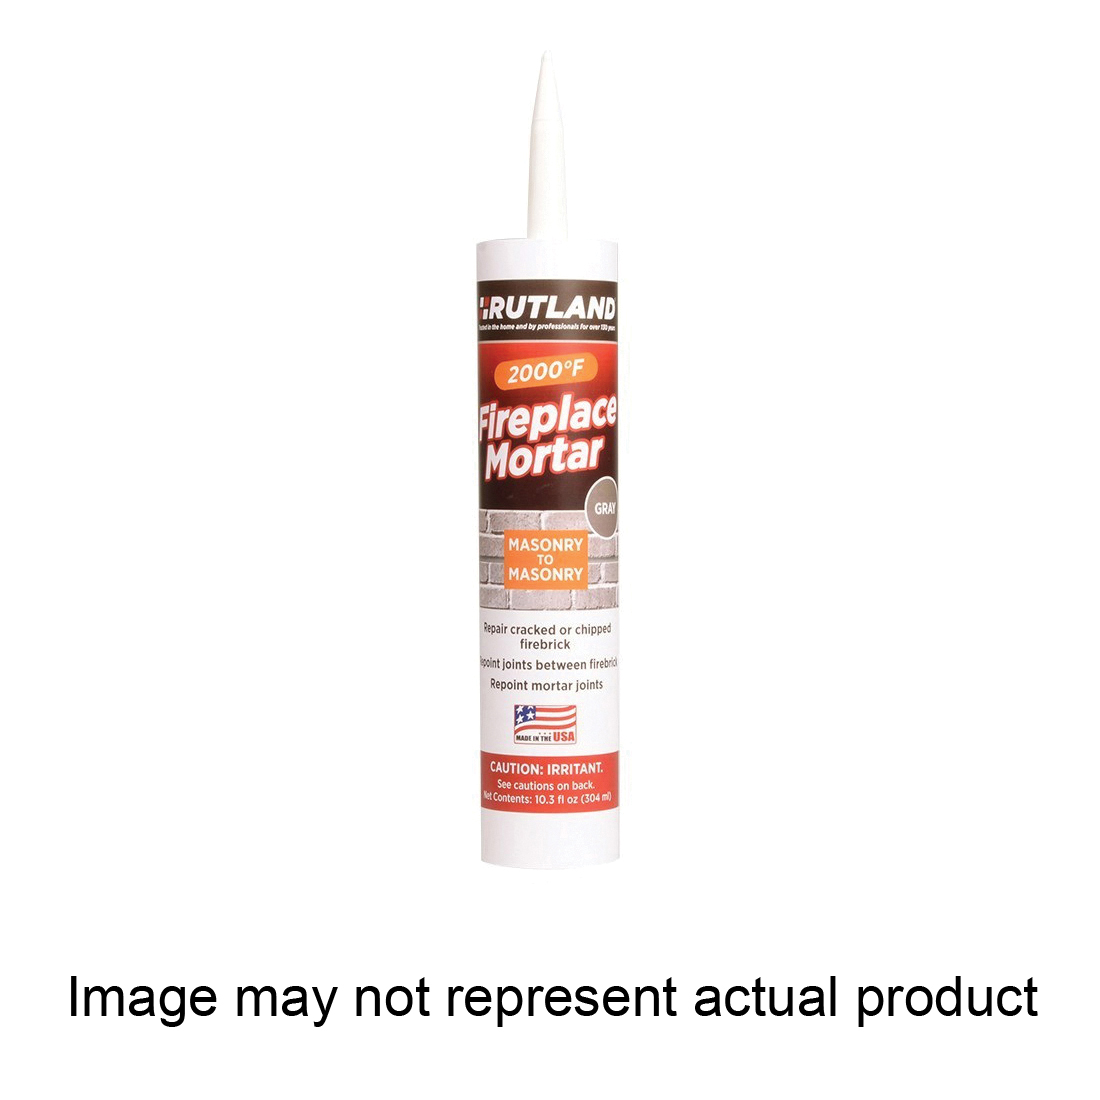 Picture of RUTLAND 63 Fireplace Mortar, Paste, Black, 10.3 oz Package, Cartridge